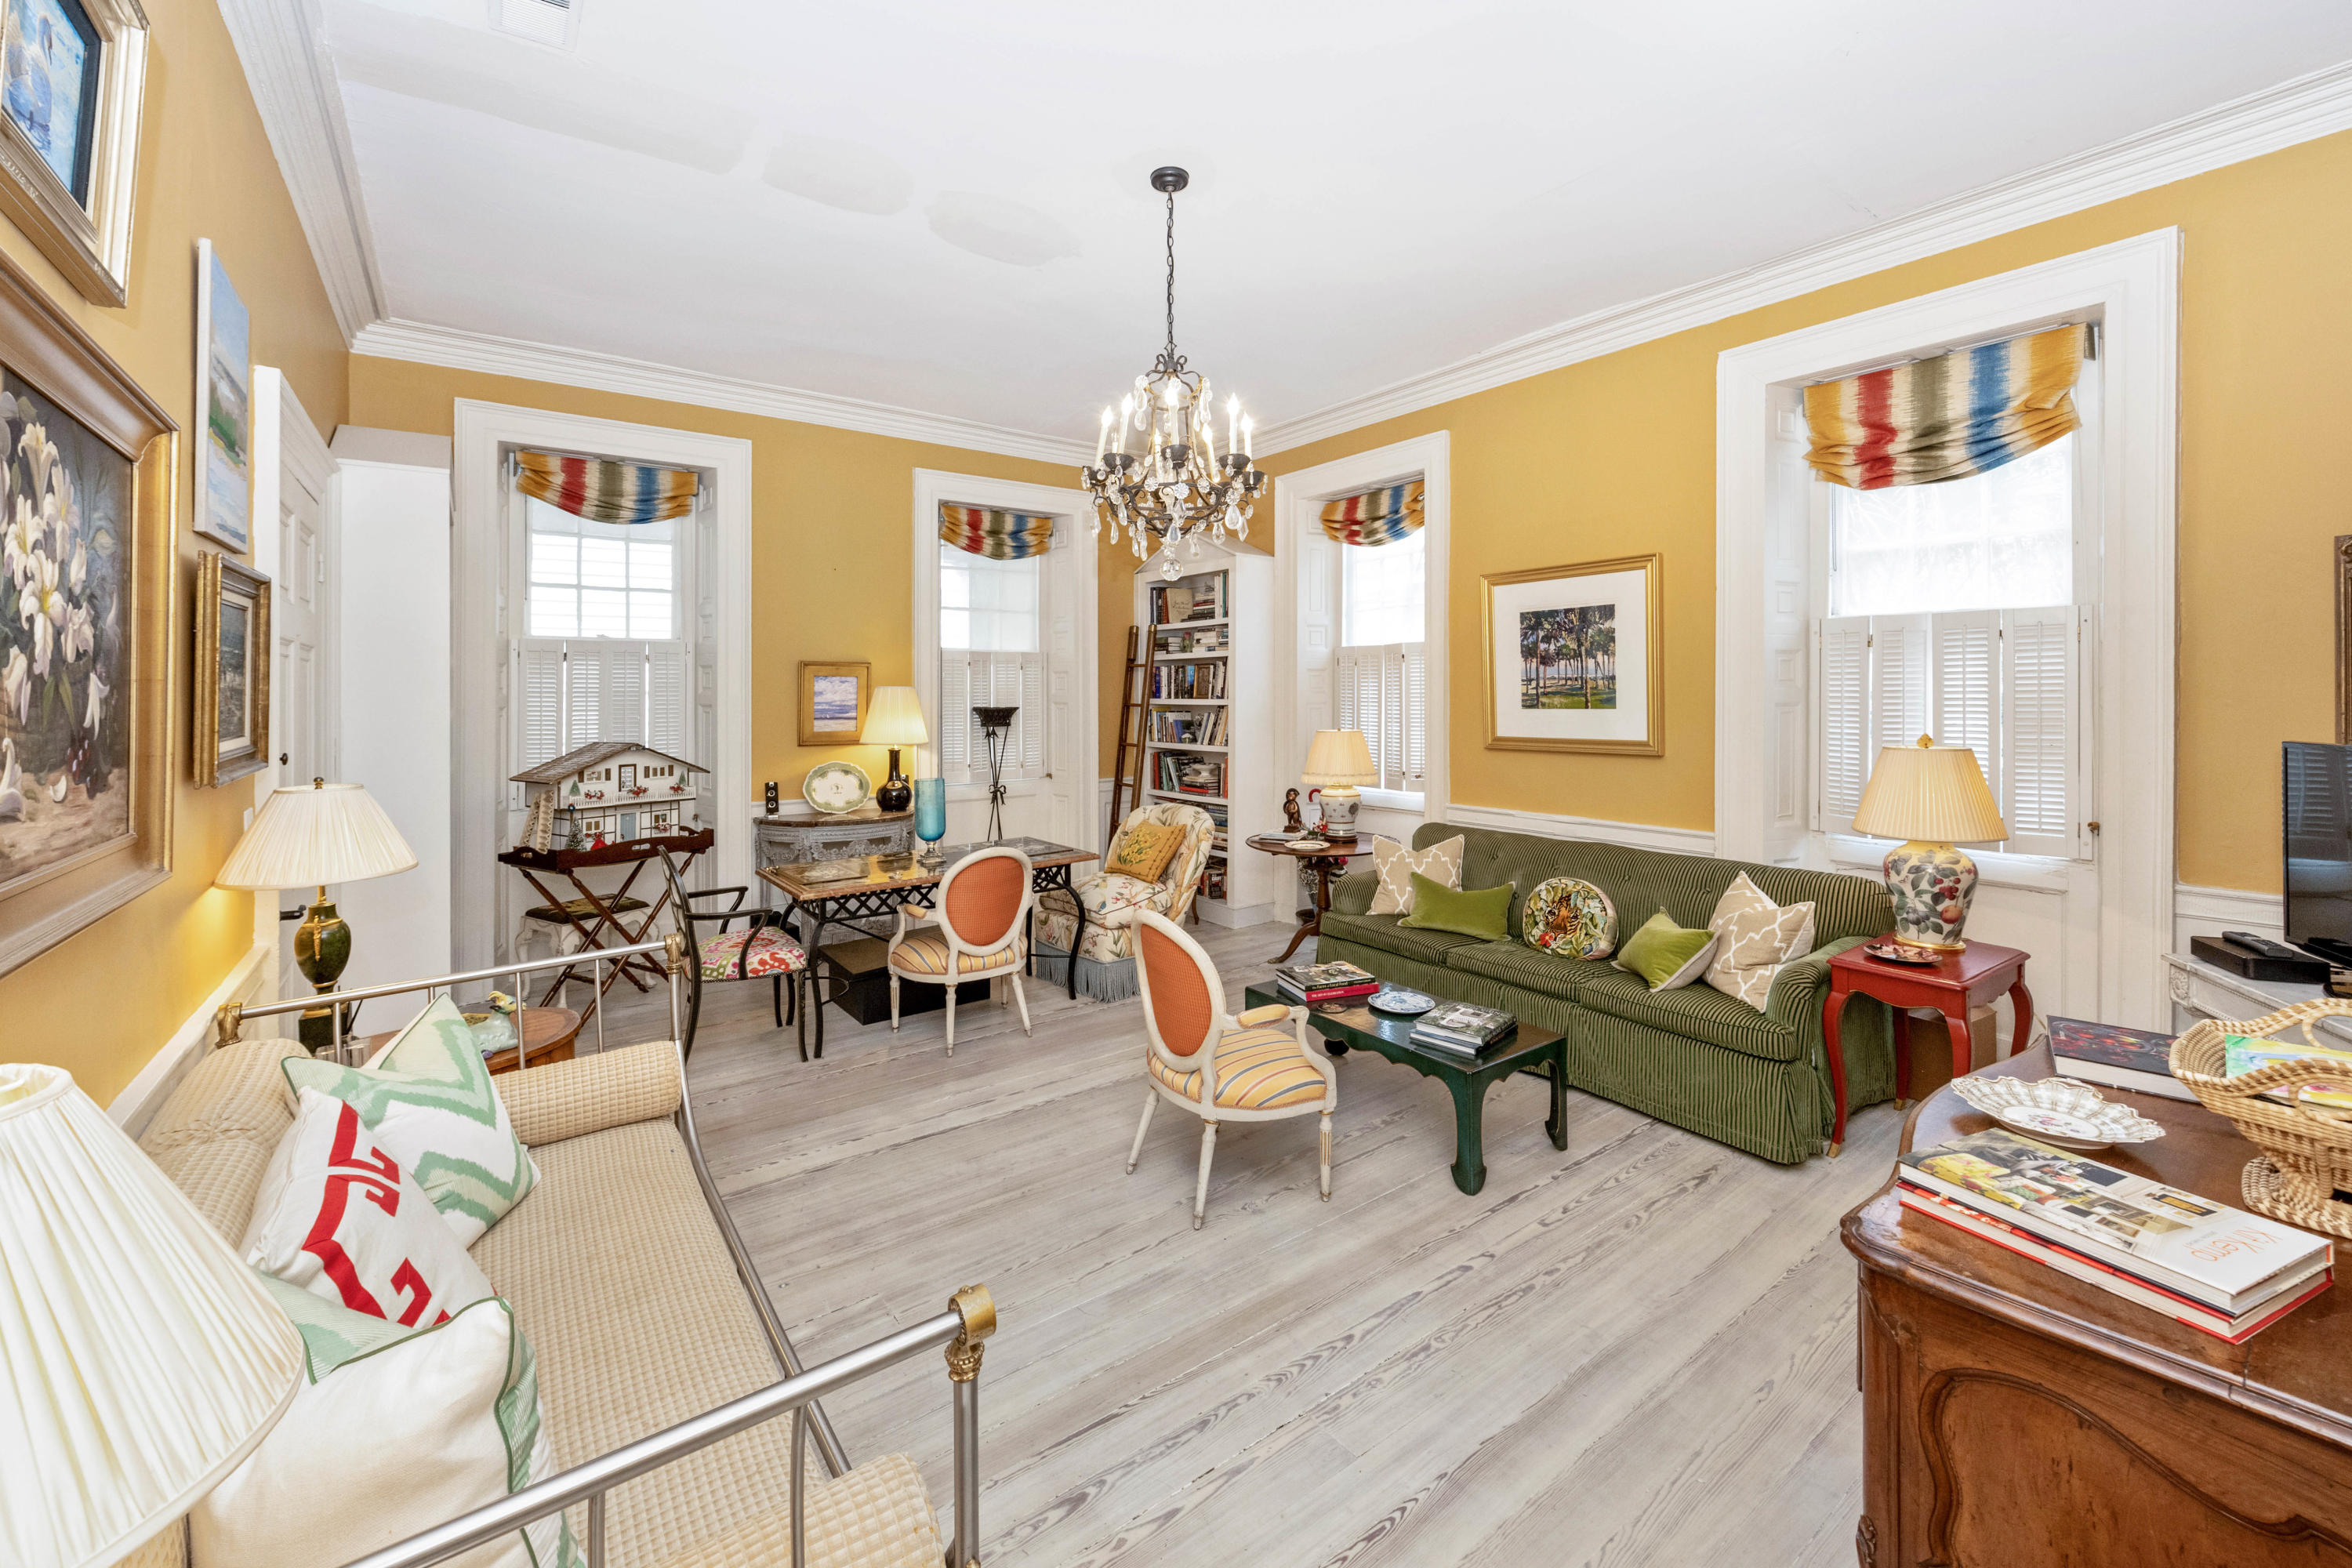 Radcliffeborough Condos For Sale - 65 Vanderhorst, Charleston, SC - 8